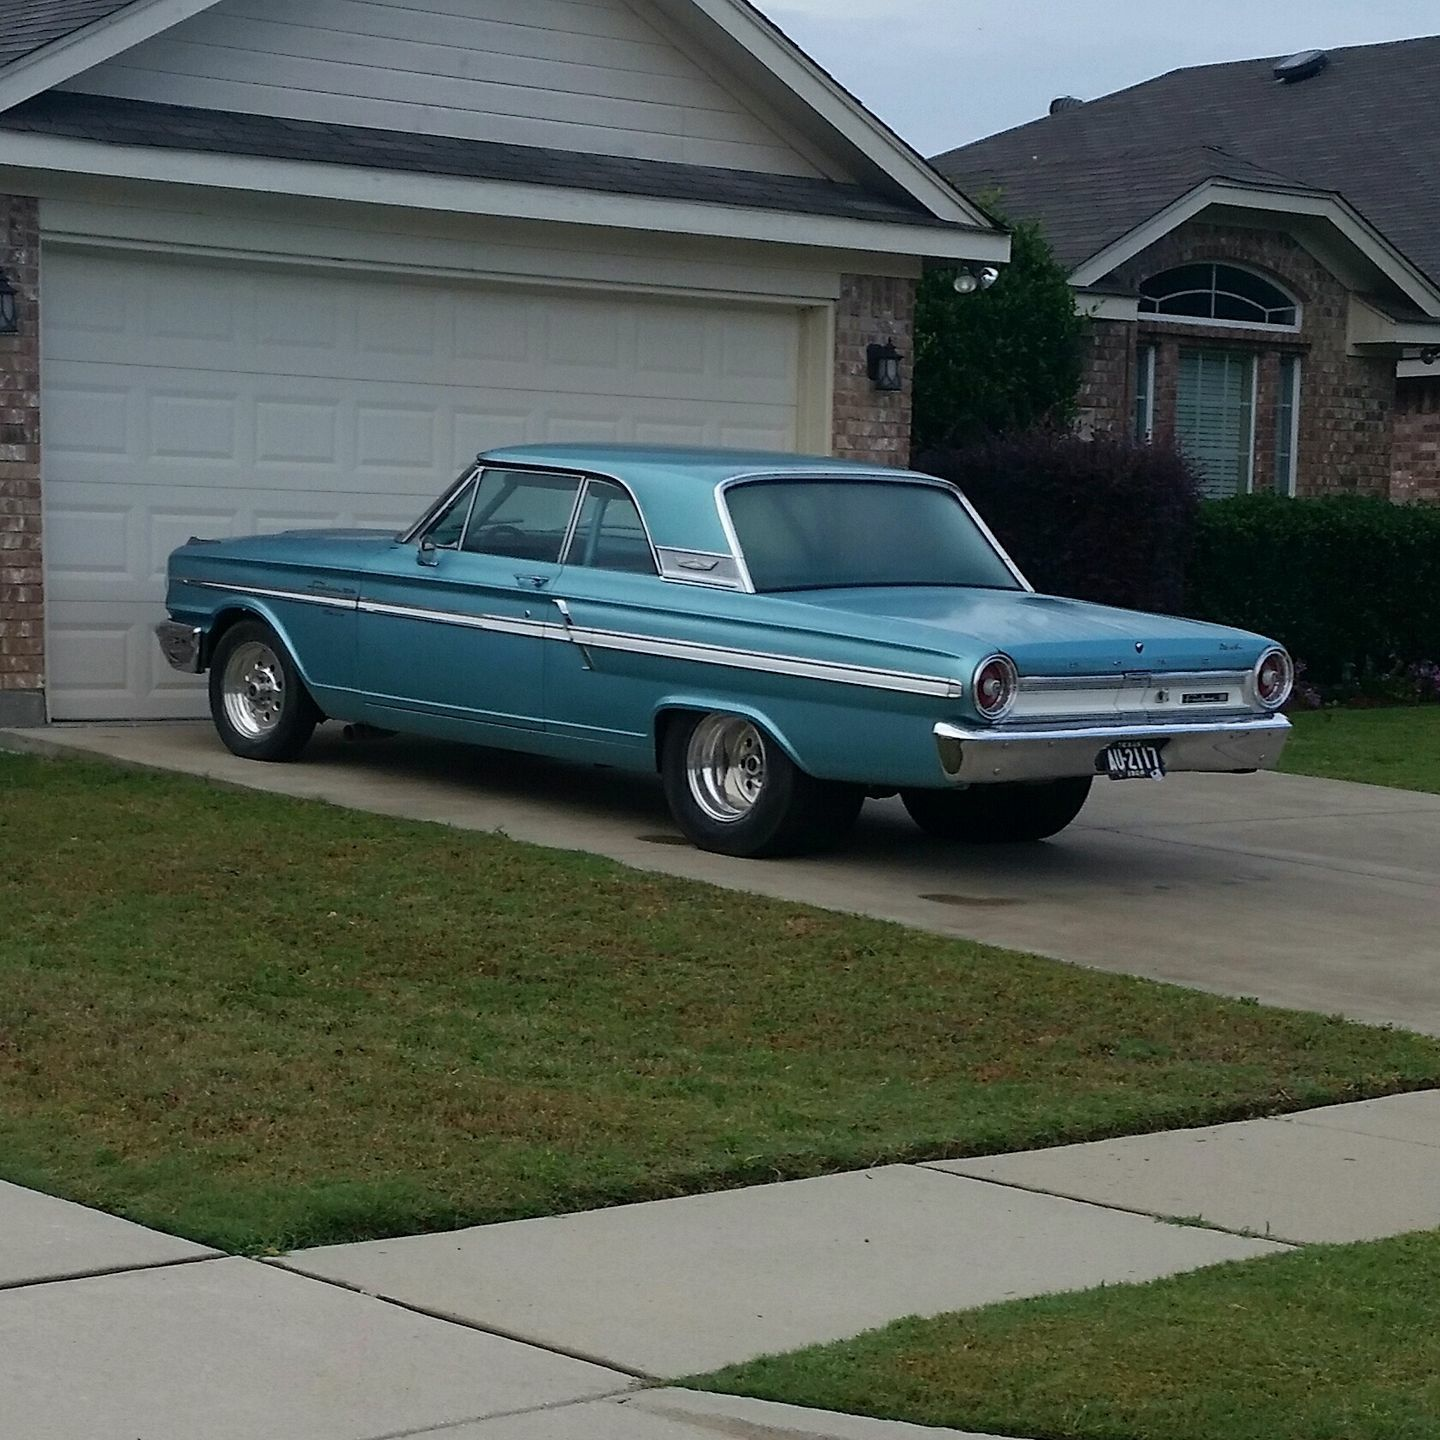 64 Ford Fairlane Ford Classic Cars Ford Fairlane Classic Cars